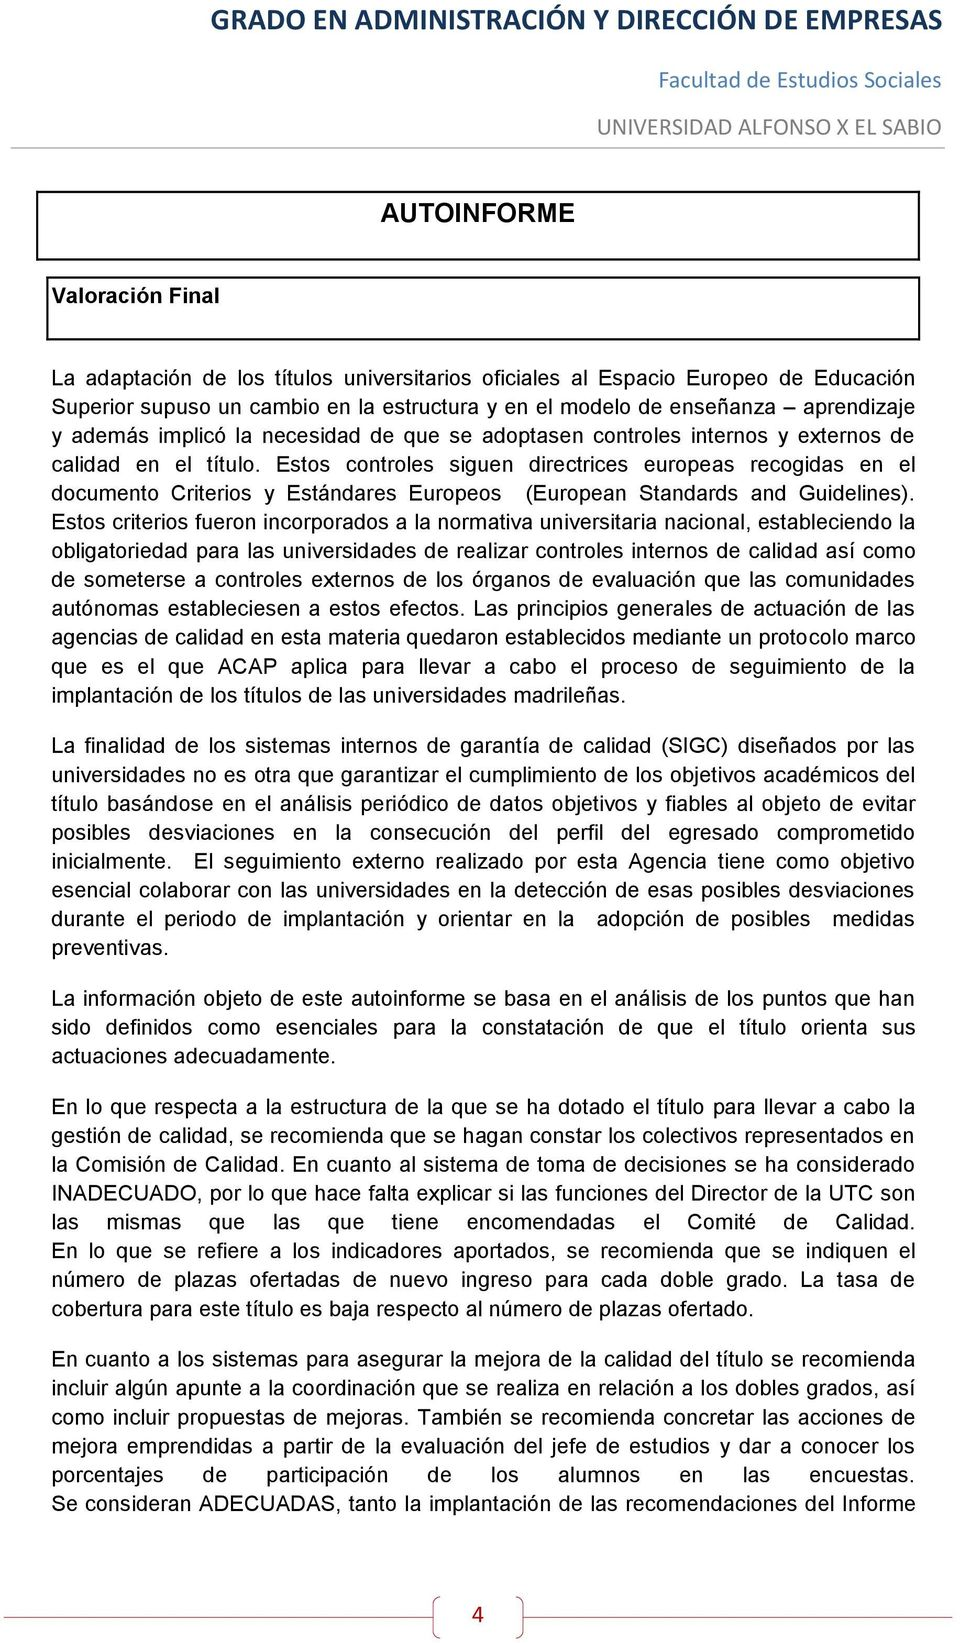 Estos controles siguen directrices europeas recogidas en el documento Criterios y Estándares Europeos (European Standards and Guidelines).